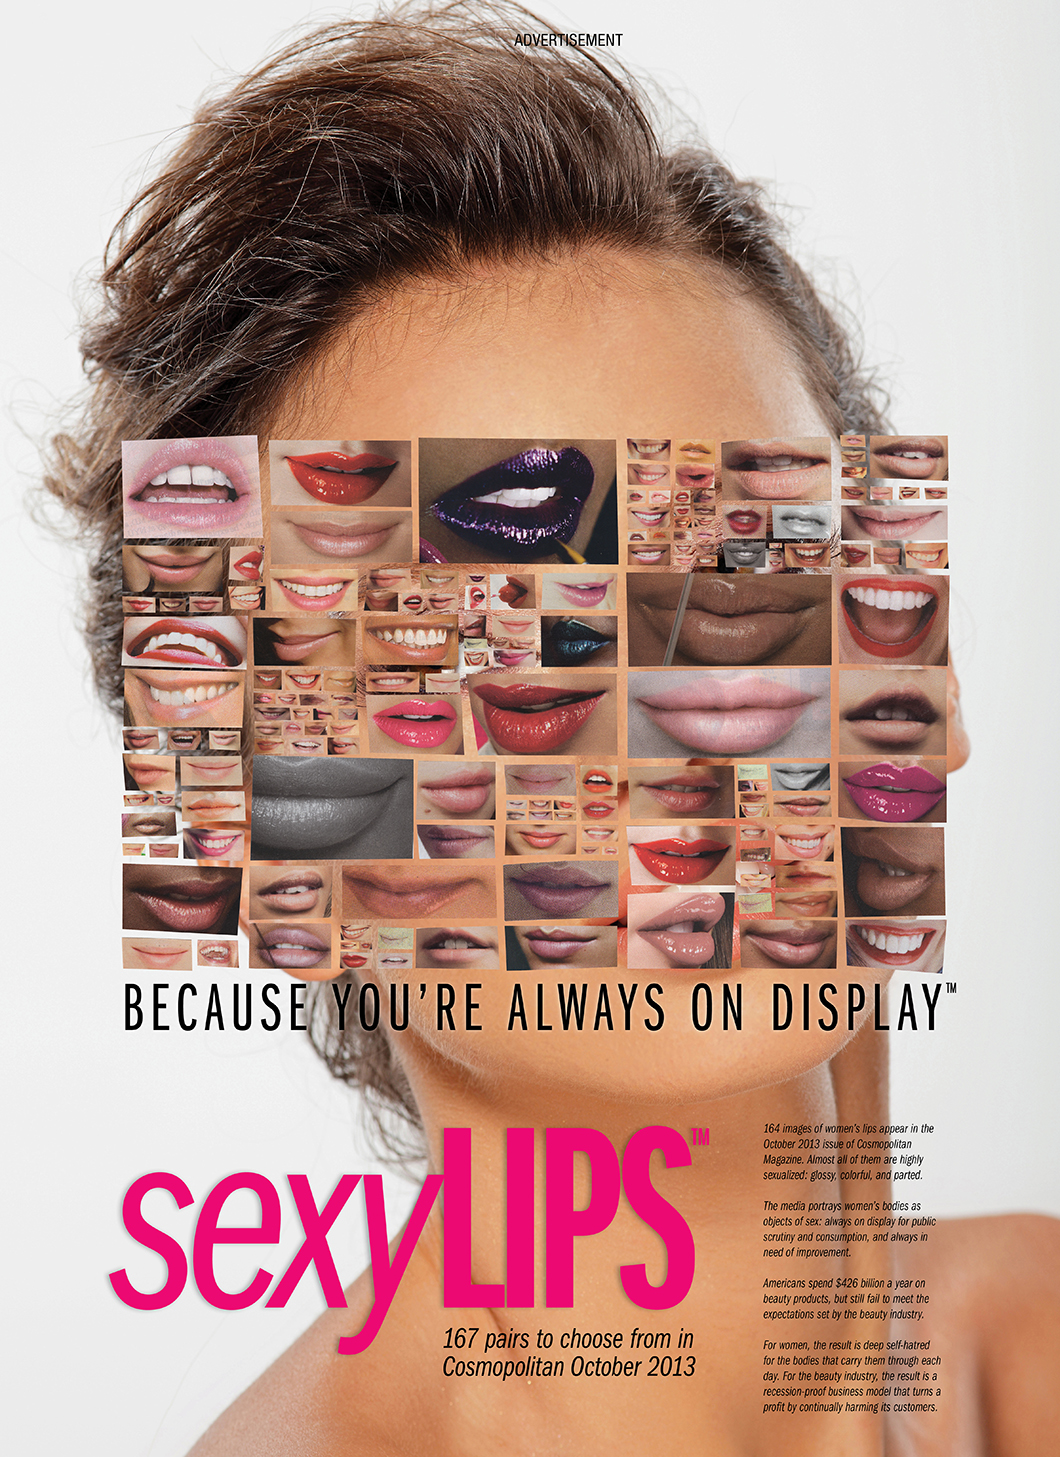 large_project_thesis_3sexylips_@2x.jpg